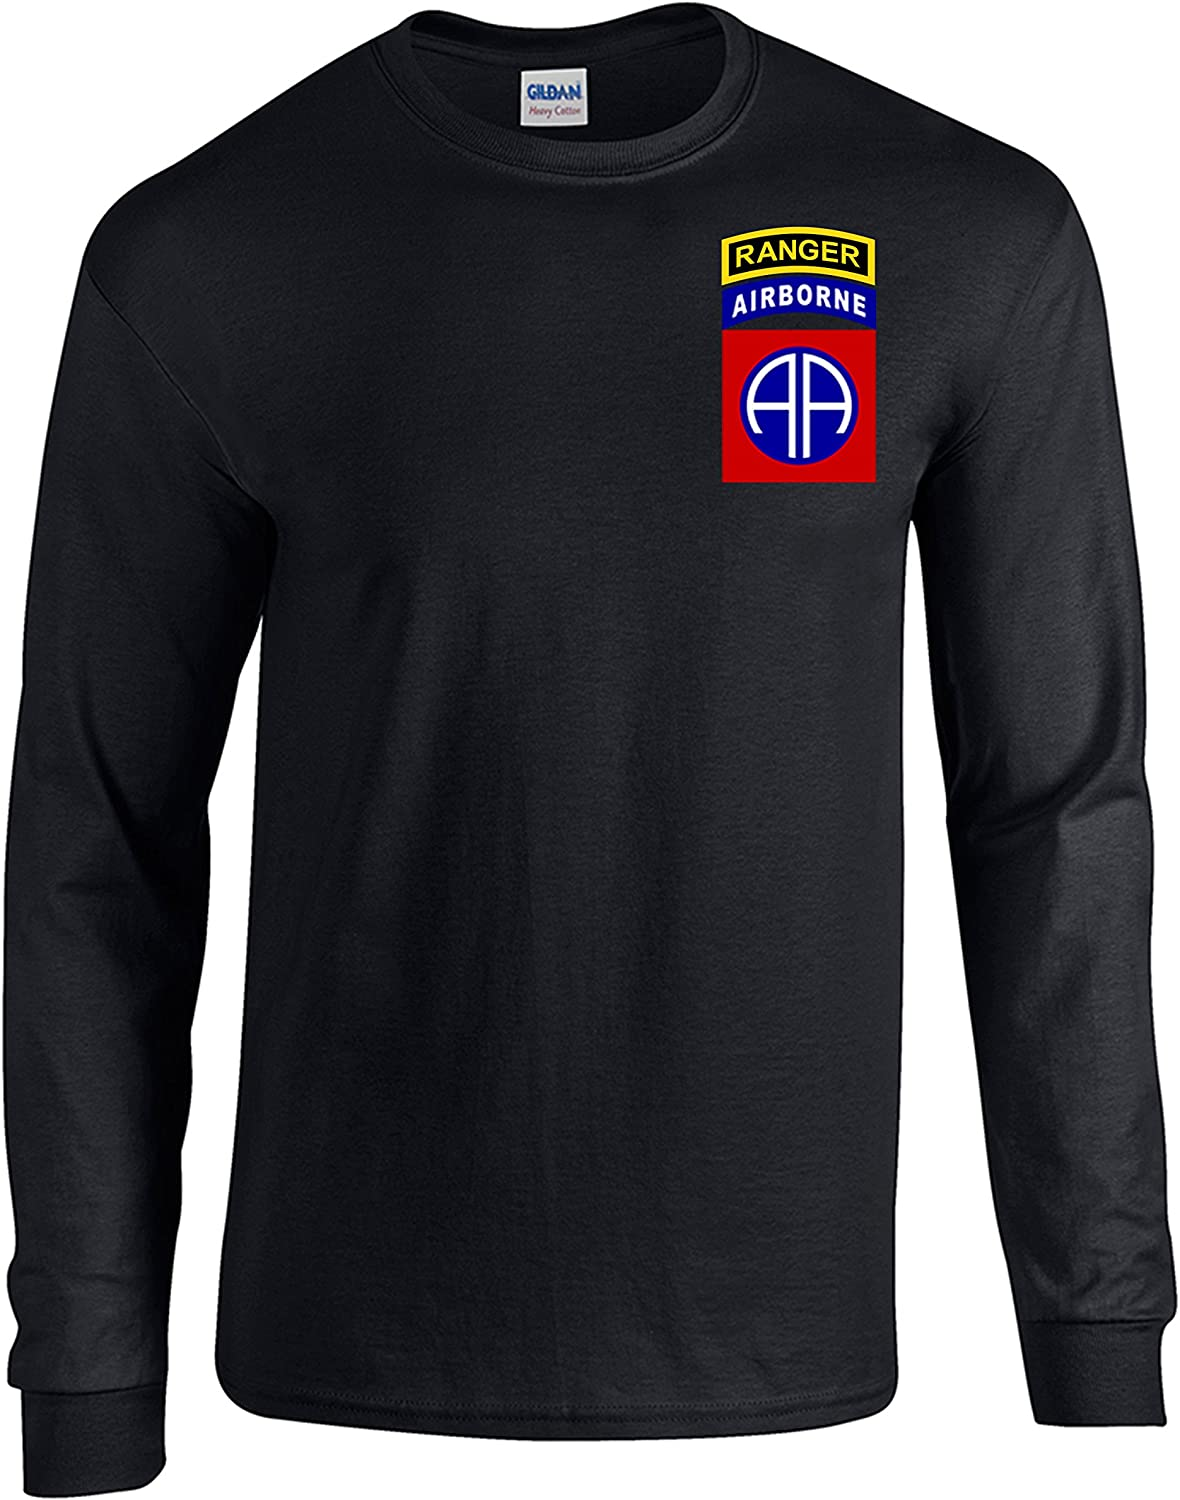 MILITARY NEW ARMY 82nd AIRBORNE long sleeve T-SHIRT// FRONT PRINT ONLY